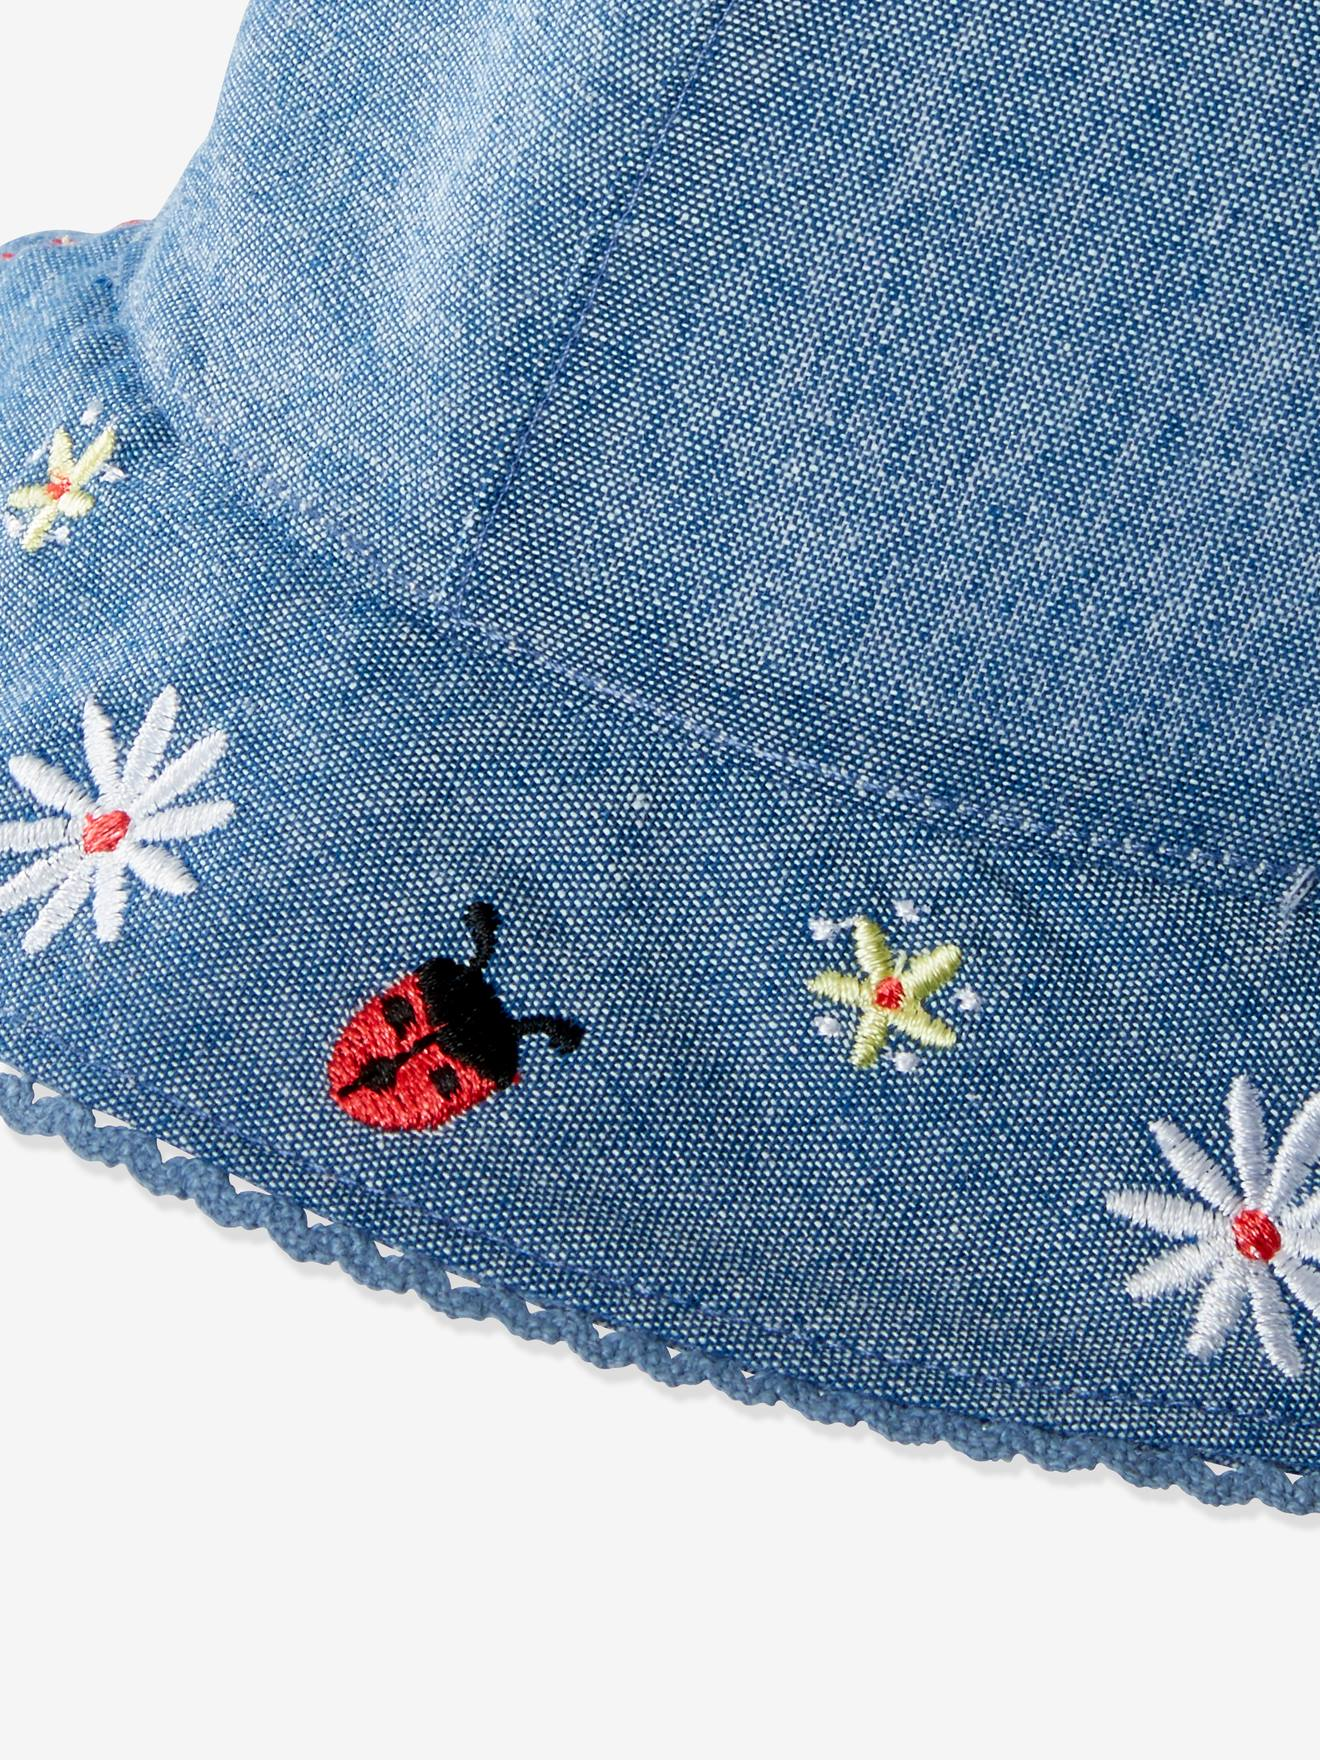 Denim Bucket Hat With Embroidery For Babies Blue Medium Solid With Design Baby